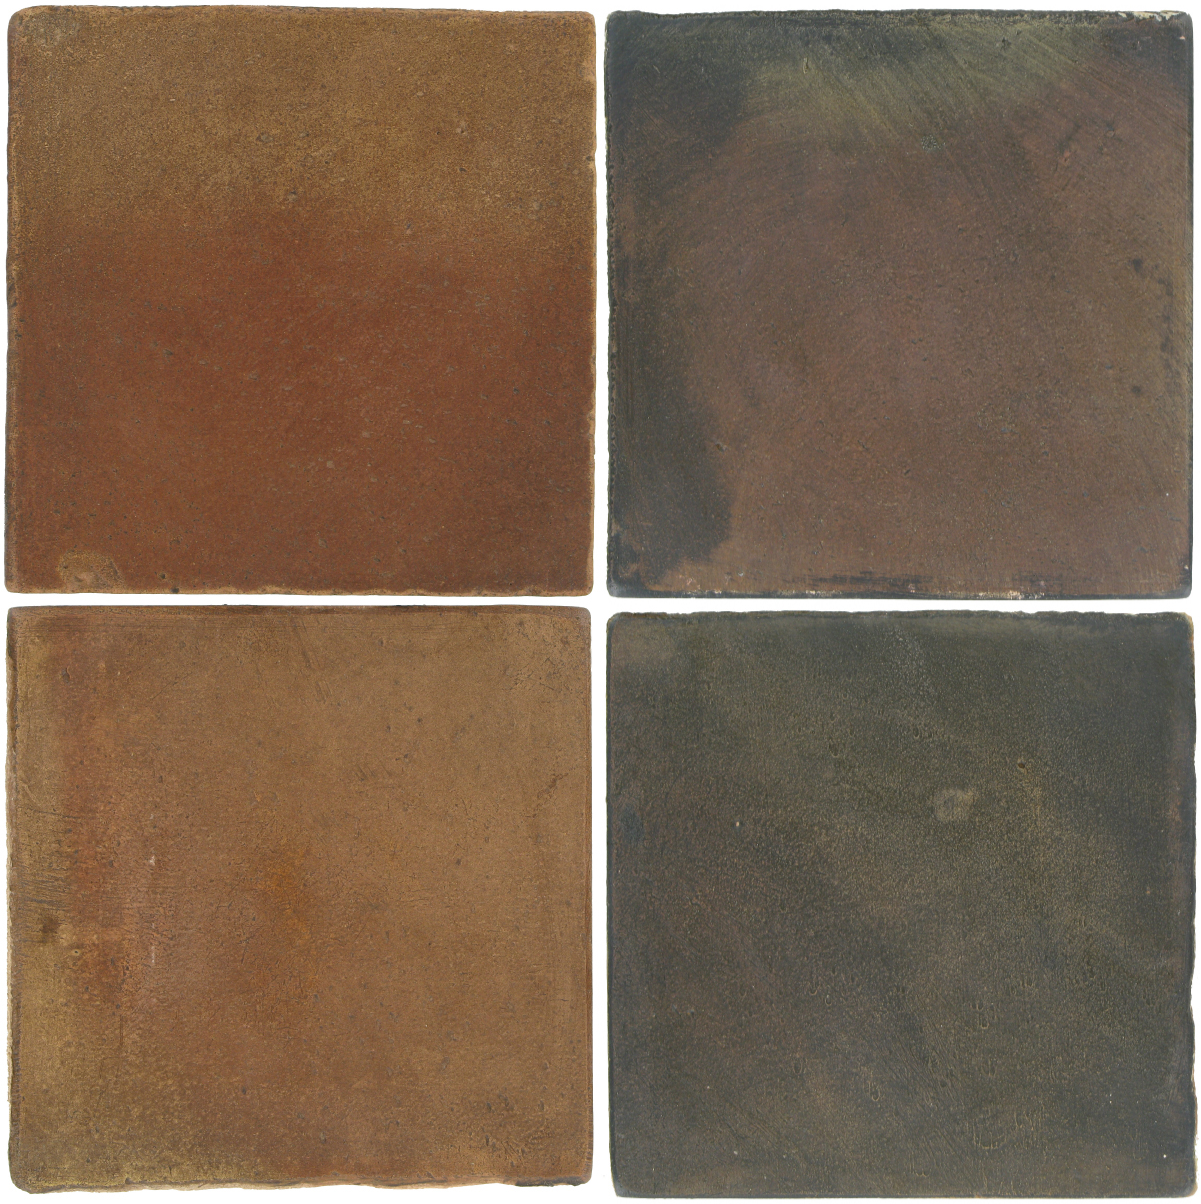 Pedralbes Antique Terracotta  2 Color Combinations  OHS-PSCM Camel Brown + OHS-PSTG Terra Grey